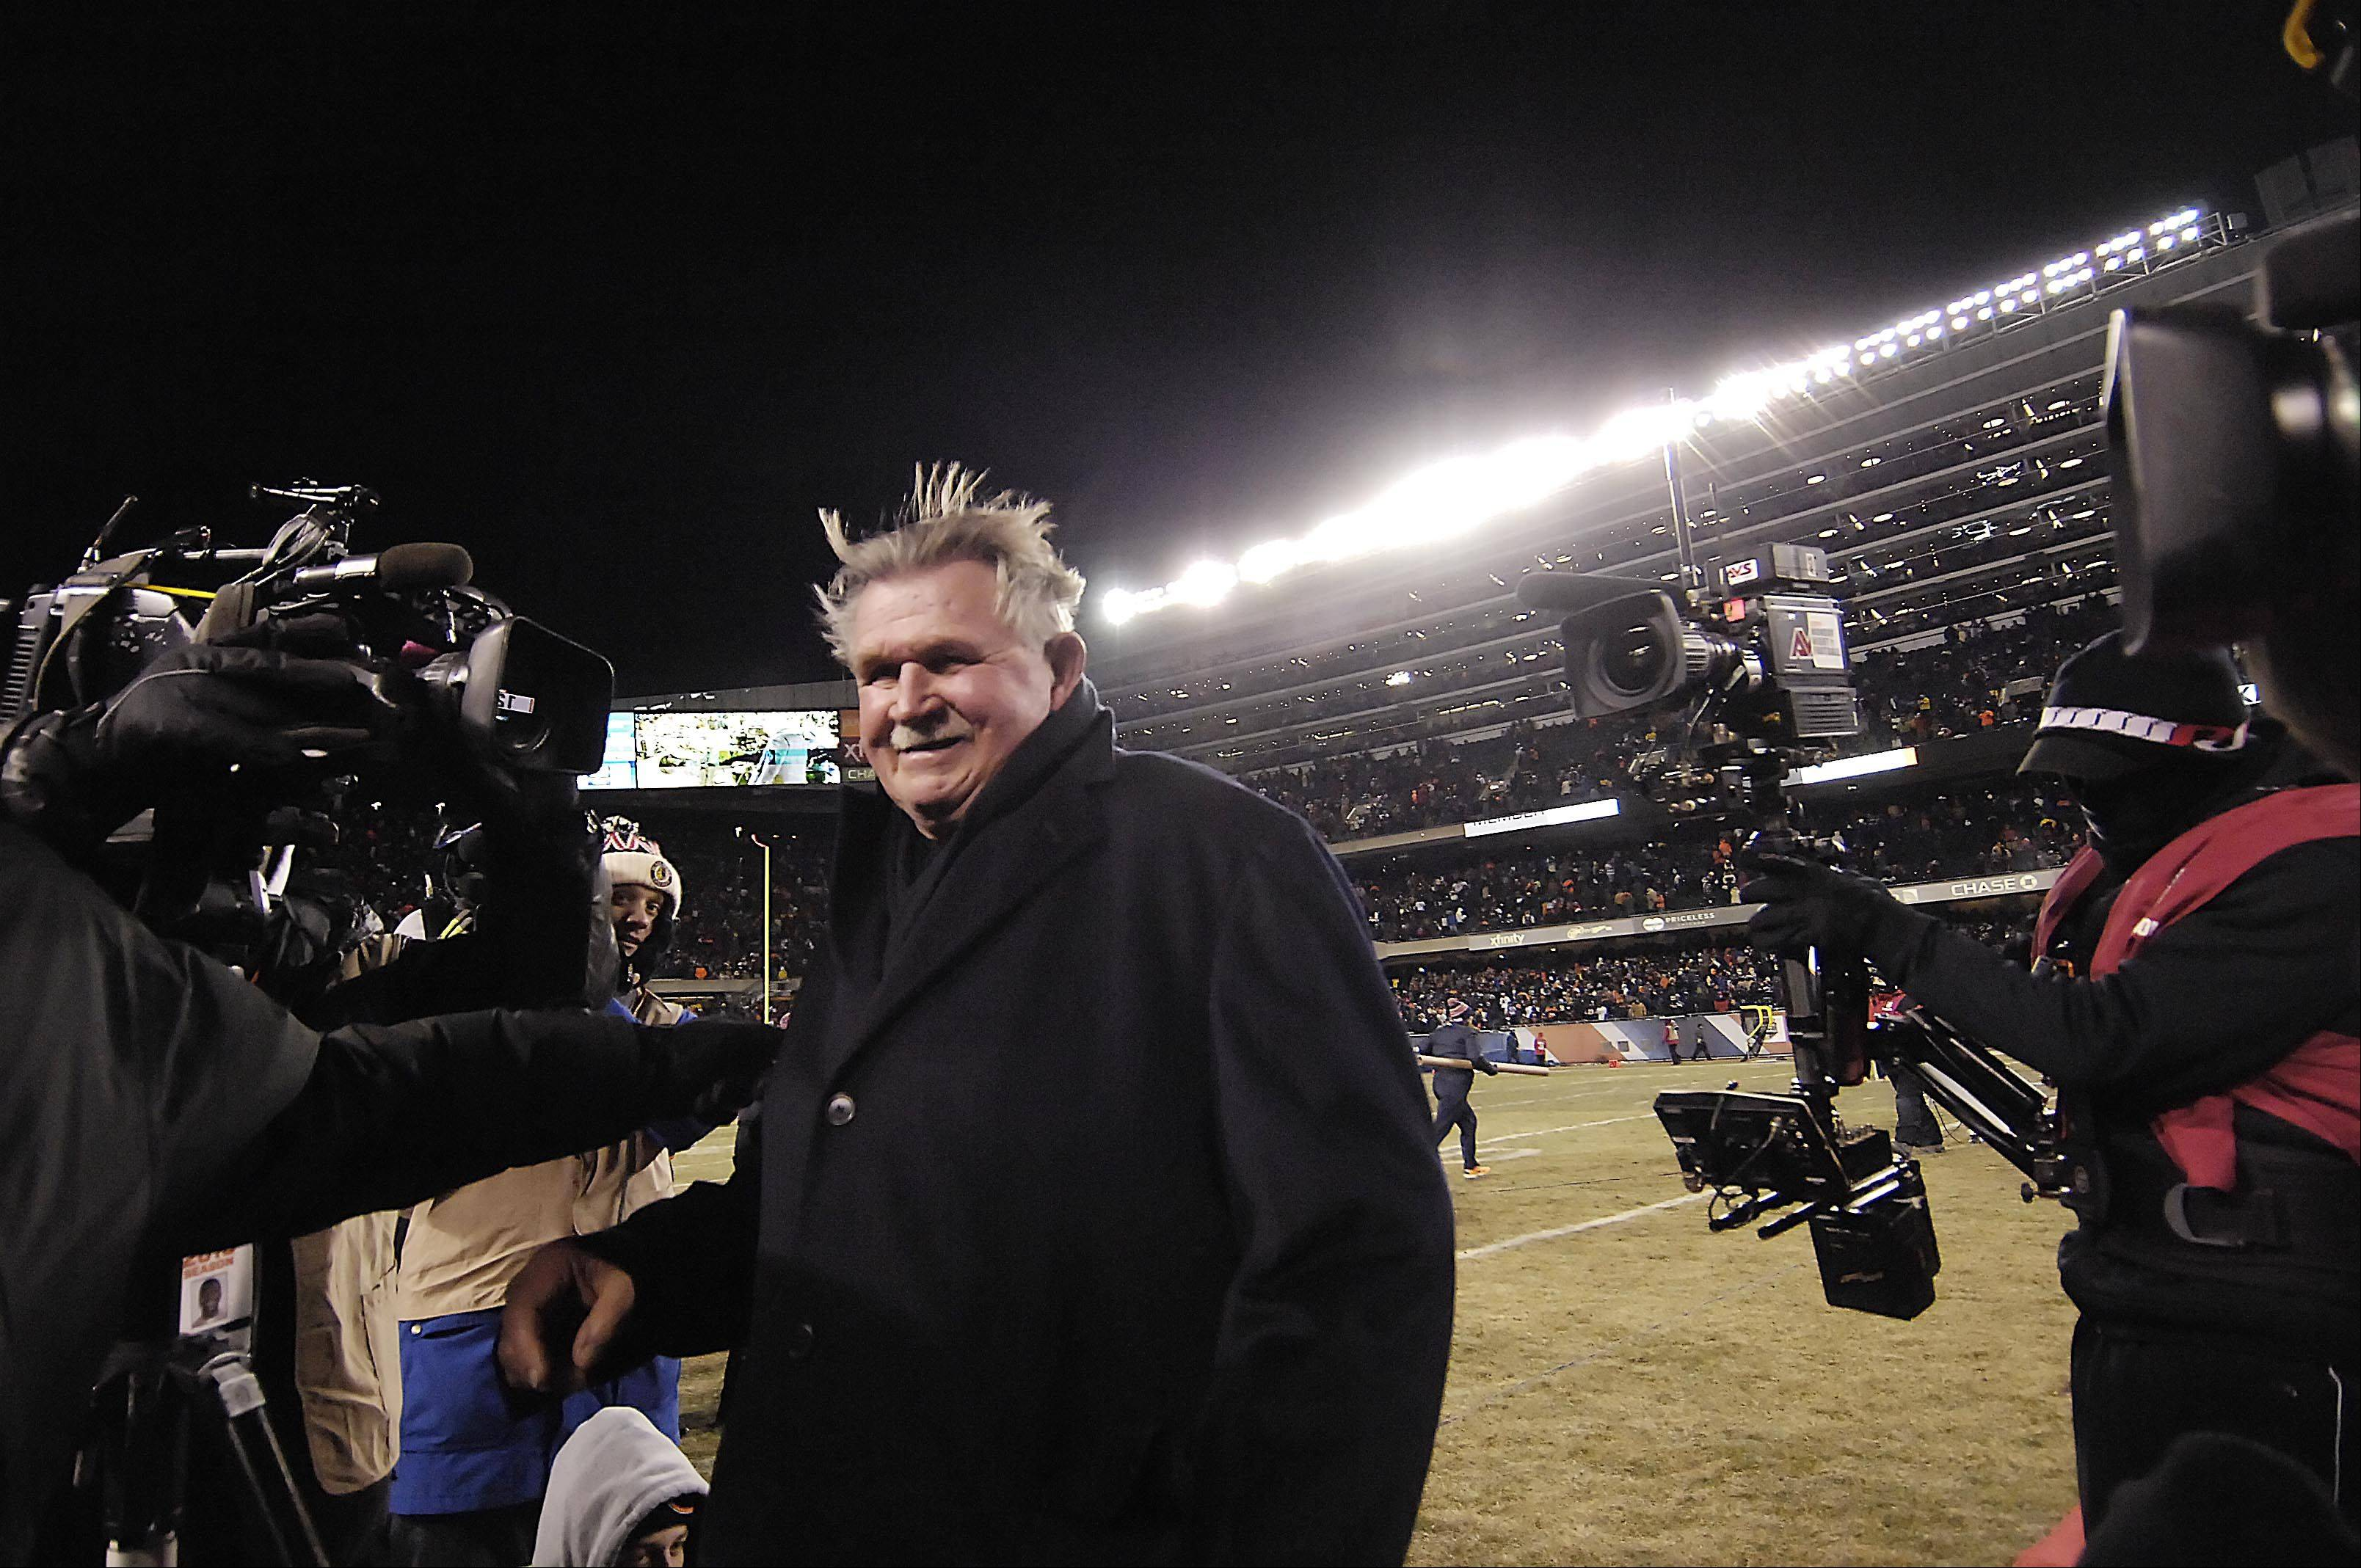 Former Chicago Bears head coach Mike Ditka smiles as he leaves the field.